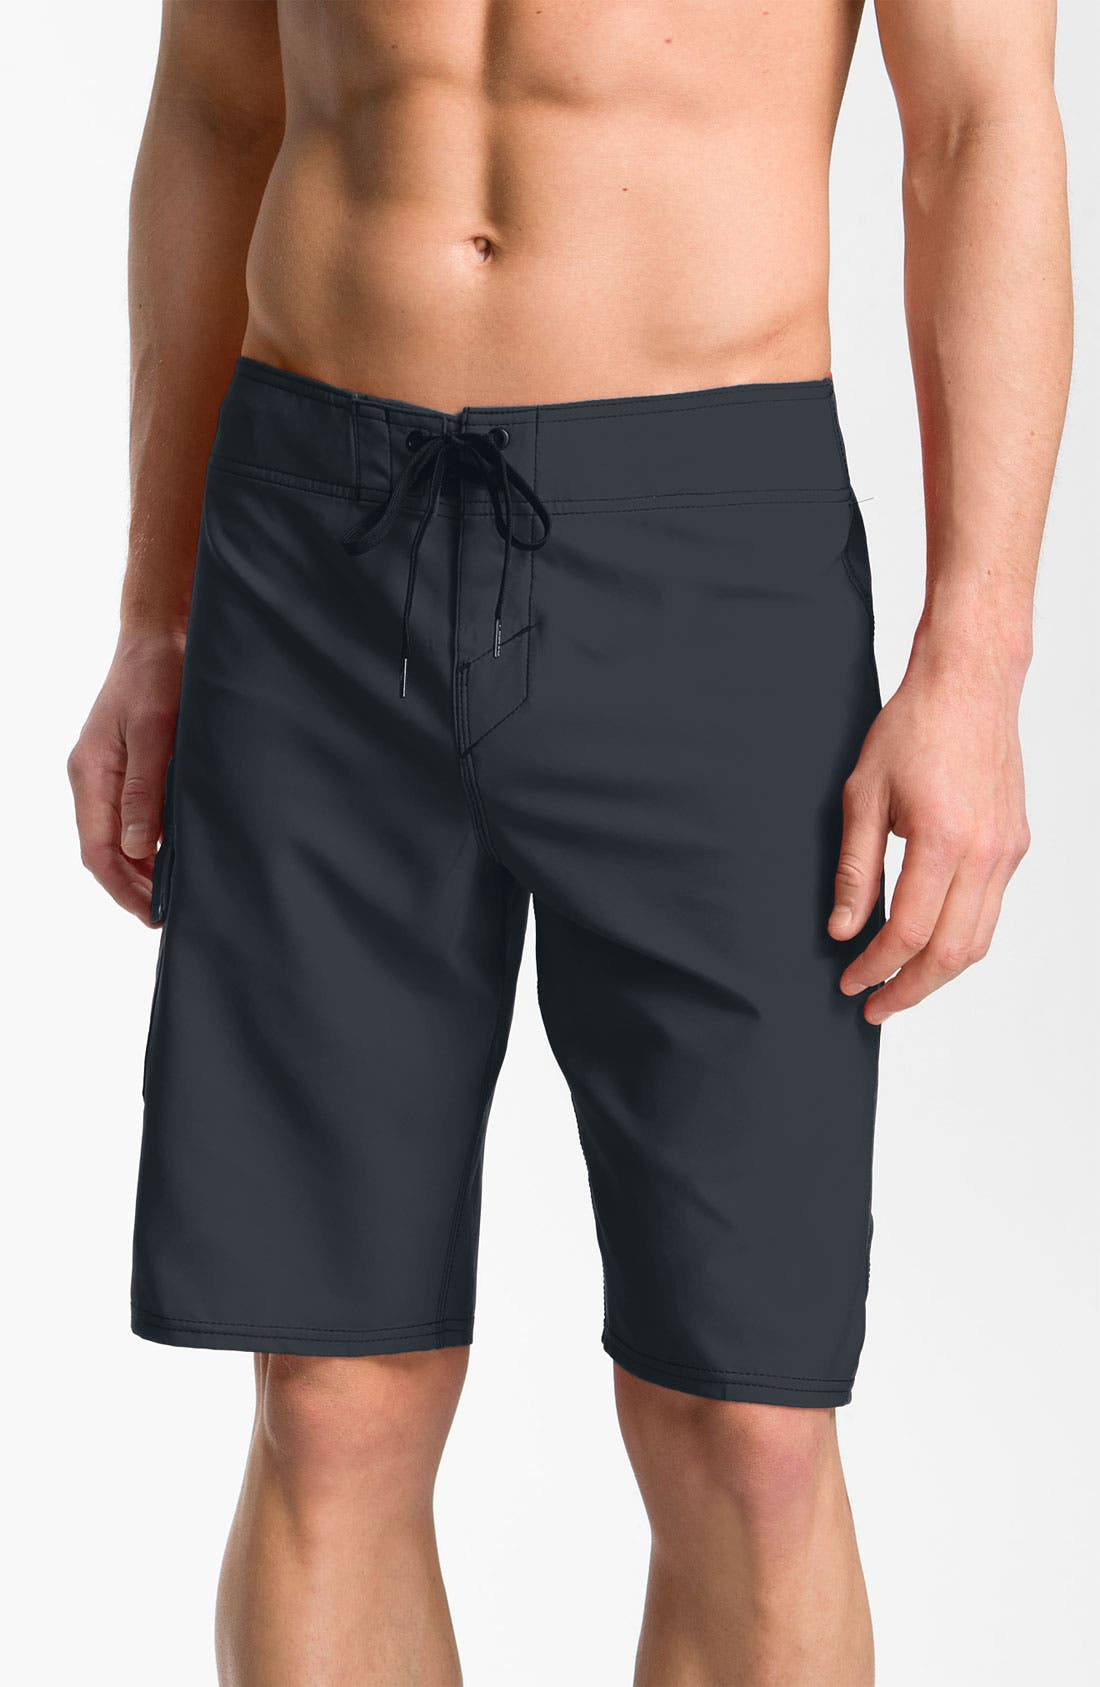 Alternate Image 1 Selected - O'Neill 'Santa Cruz Stretch' Board Shorts (Online Exclusive)